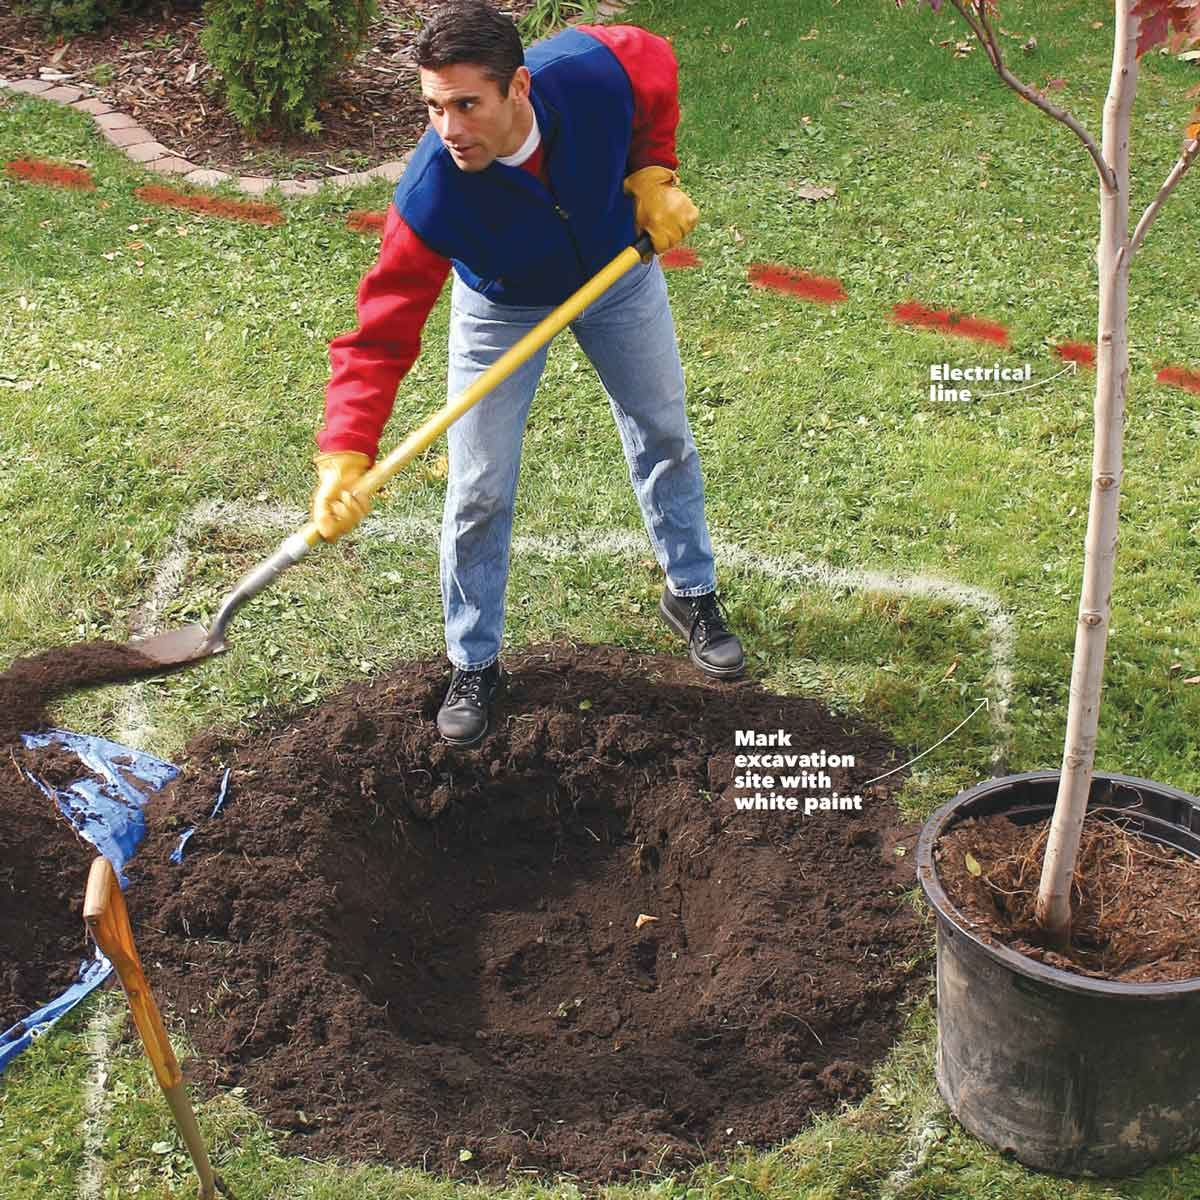 15 Expert Tips For Digging Holes The Family Handyman